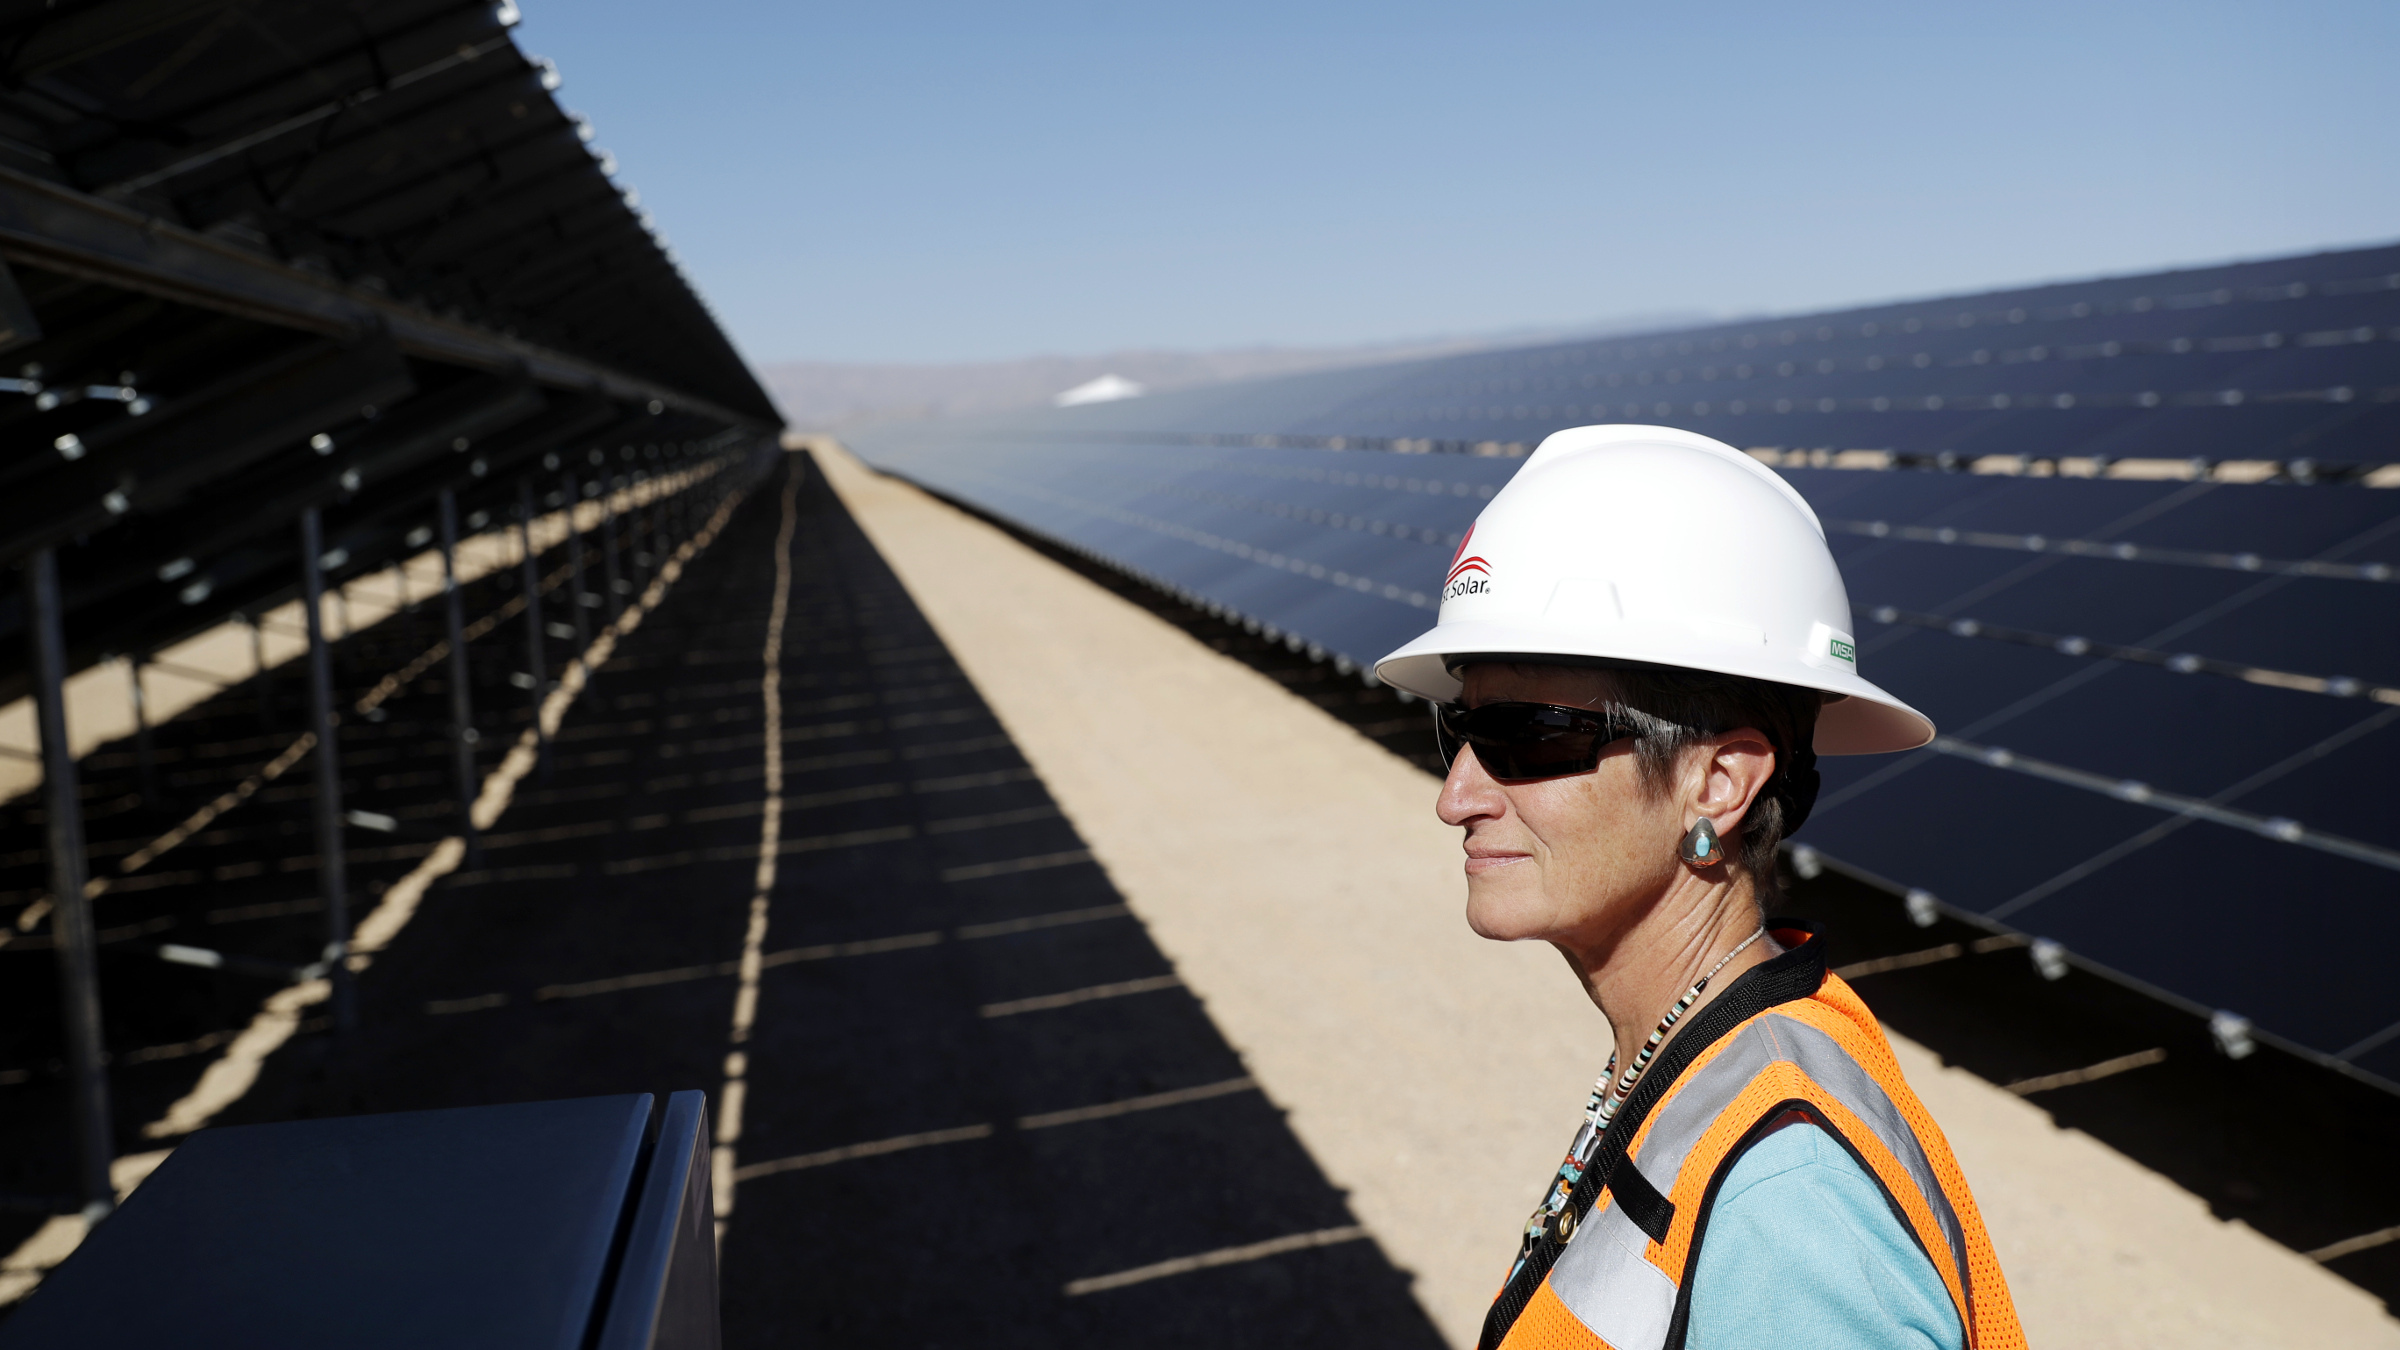 FILE - In this Sept. 15, 2016, file photo, then Secretary of the Interior Sally Jewell tours a solar project site on the Moapa River Indian Reservation about 40 miles northeast of Las Vegas. Elected officials and tribal leaders helped Friday, March 17, 2017, to power up the vast sun-to-electricity array that, in 2012, was the first utility-scale power production plant approved by the U.S. Interior Department on Indian land nationwide.